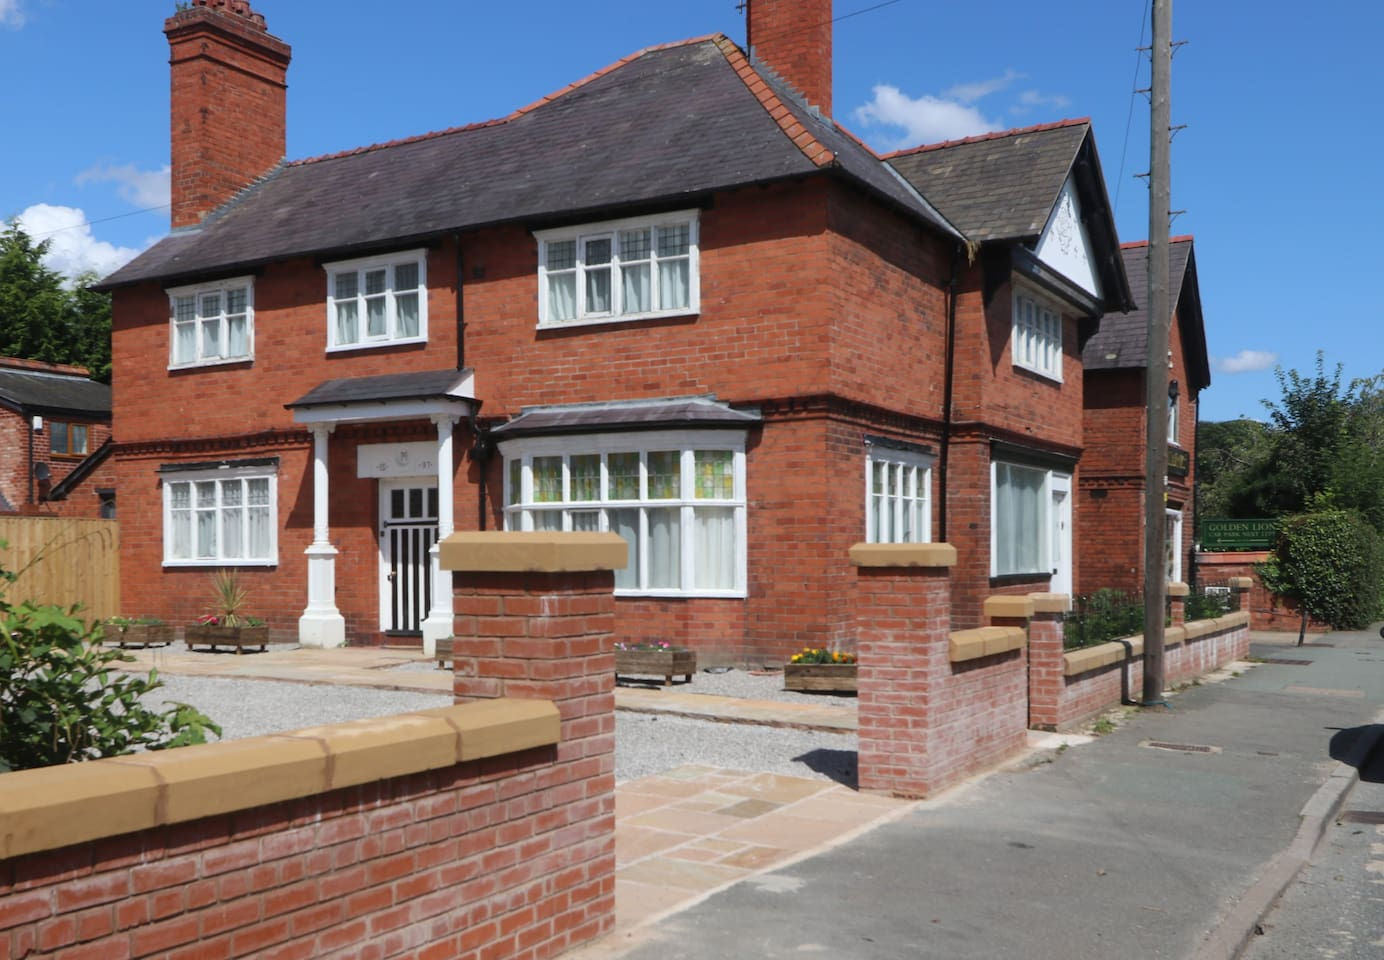 Rossett Court, a victorian detached house, ideally located in a lovely village 10 minutes from both Chester and Wrexham